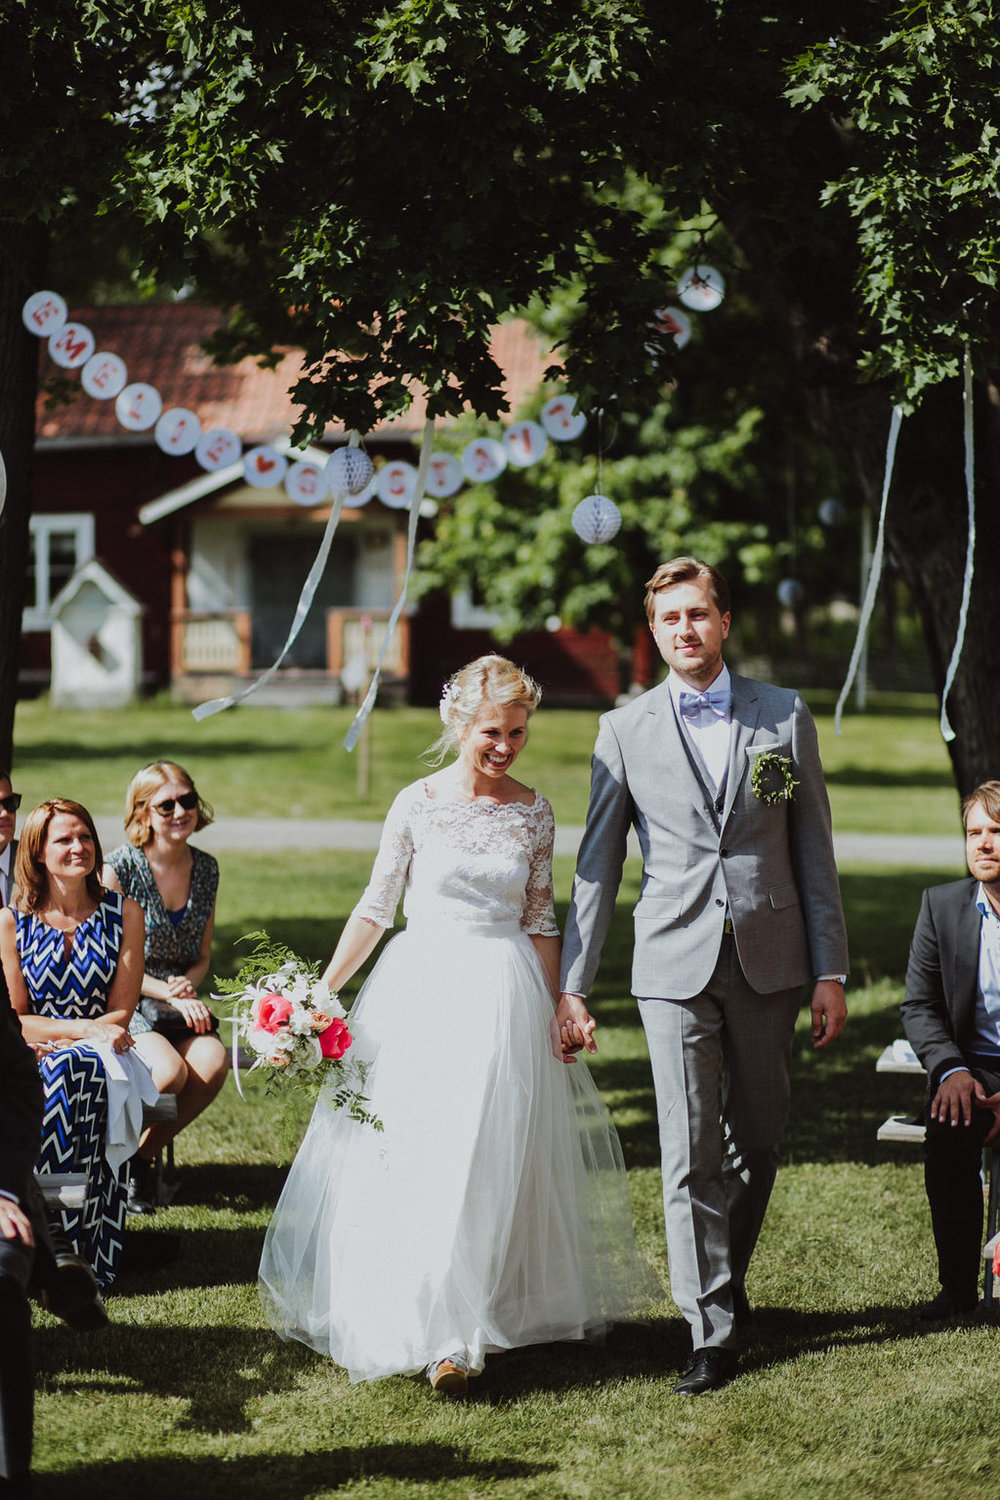 140607_wedding_emelie_gustav_pp-733.jpg